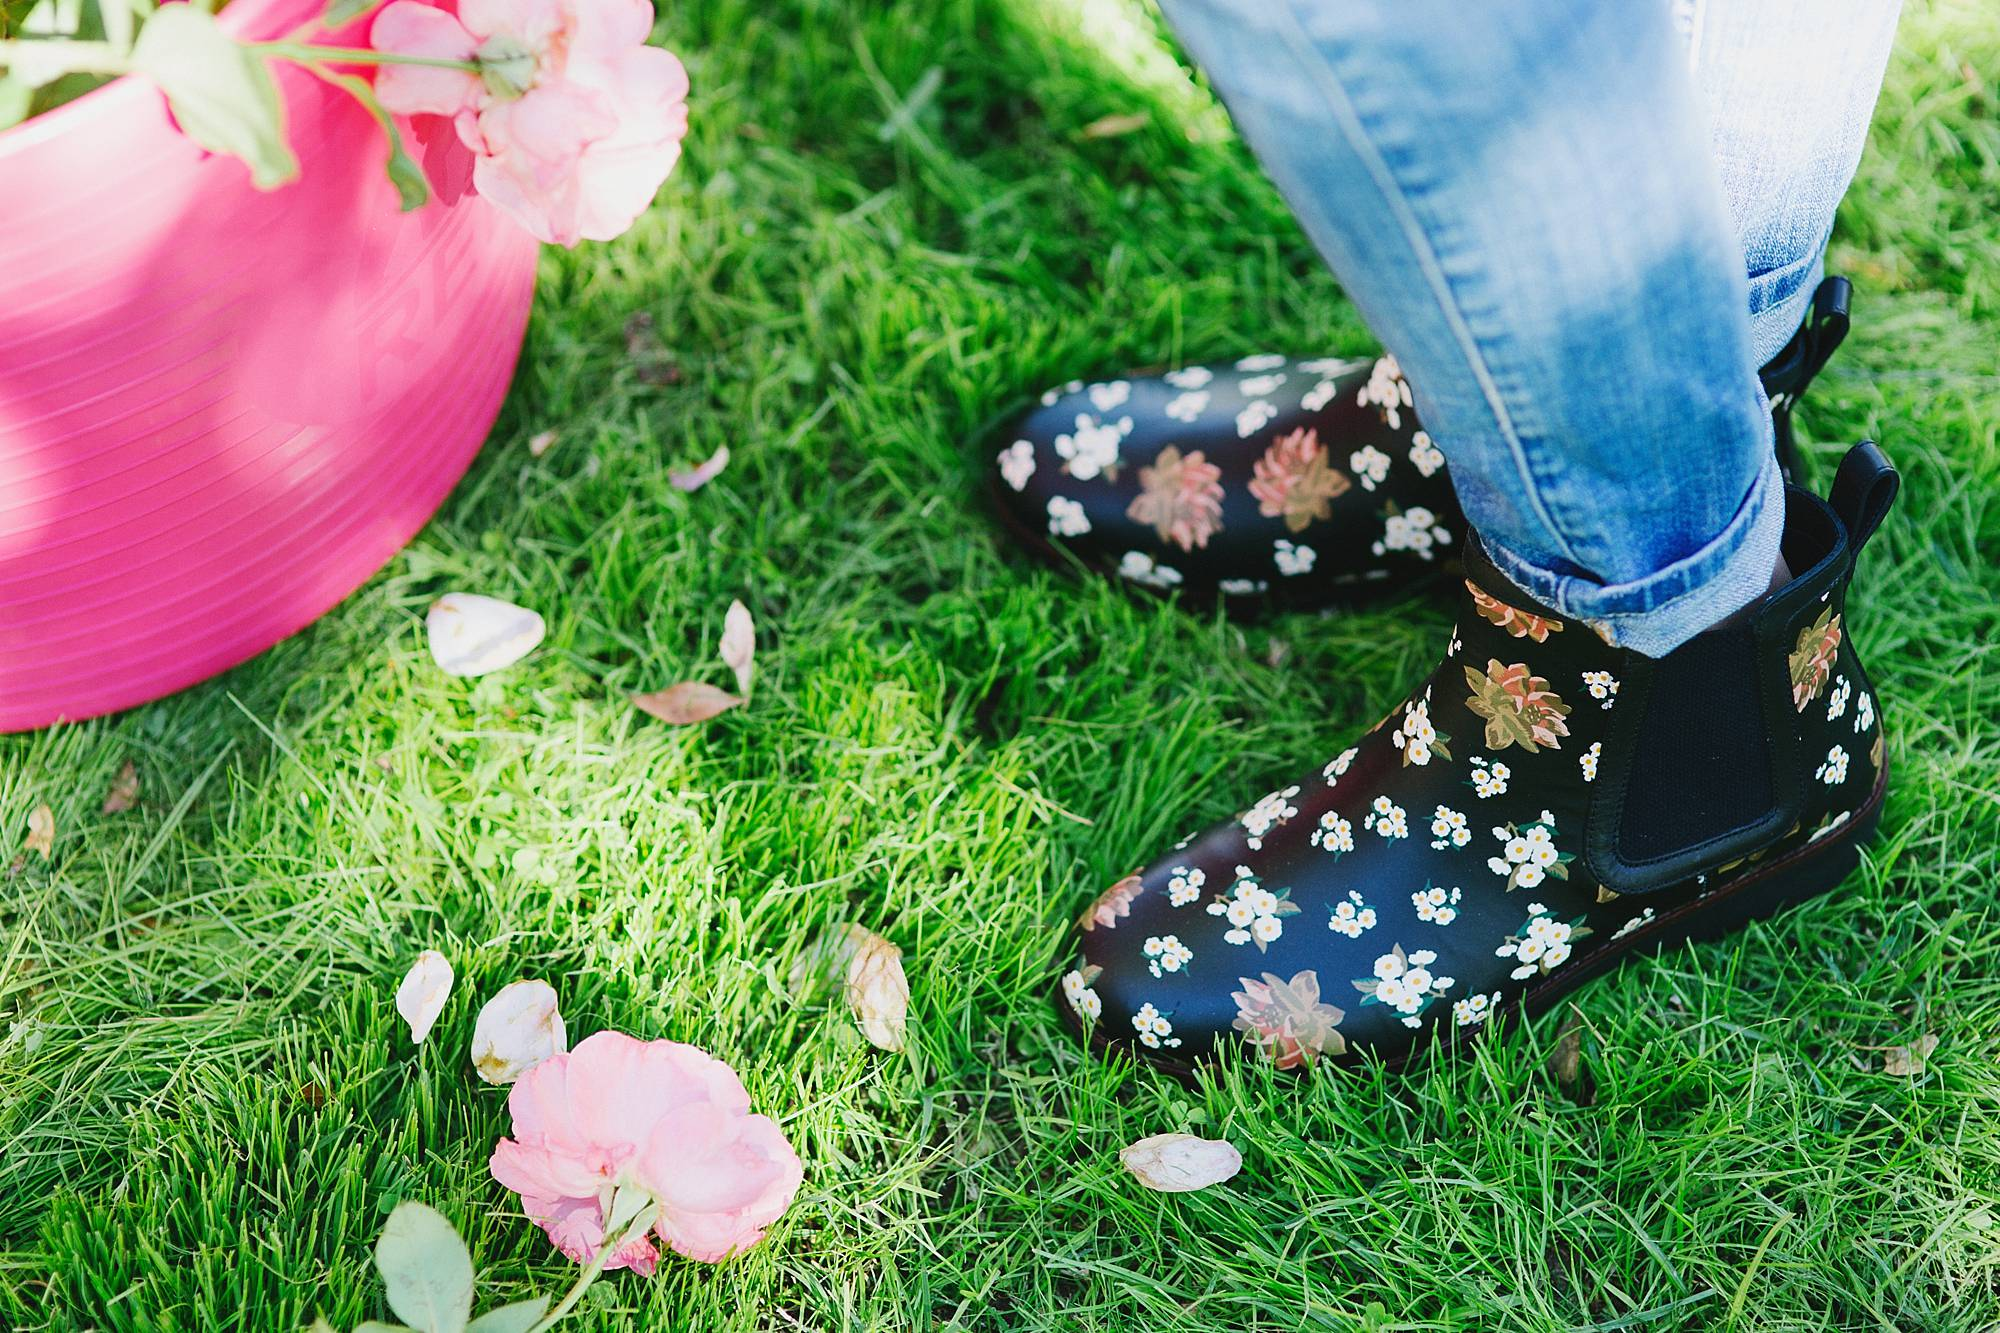 c86bf8d5a94e Taking Breaks and Rose Pruning in Floral Booties